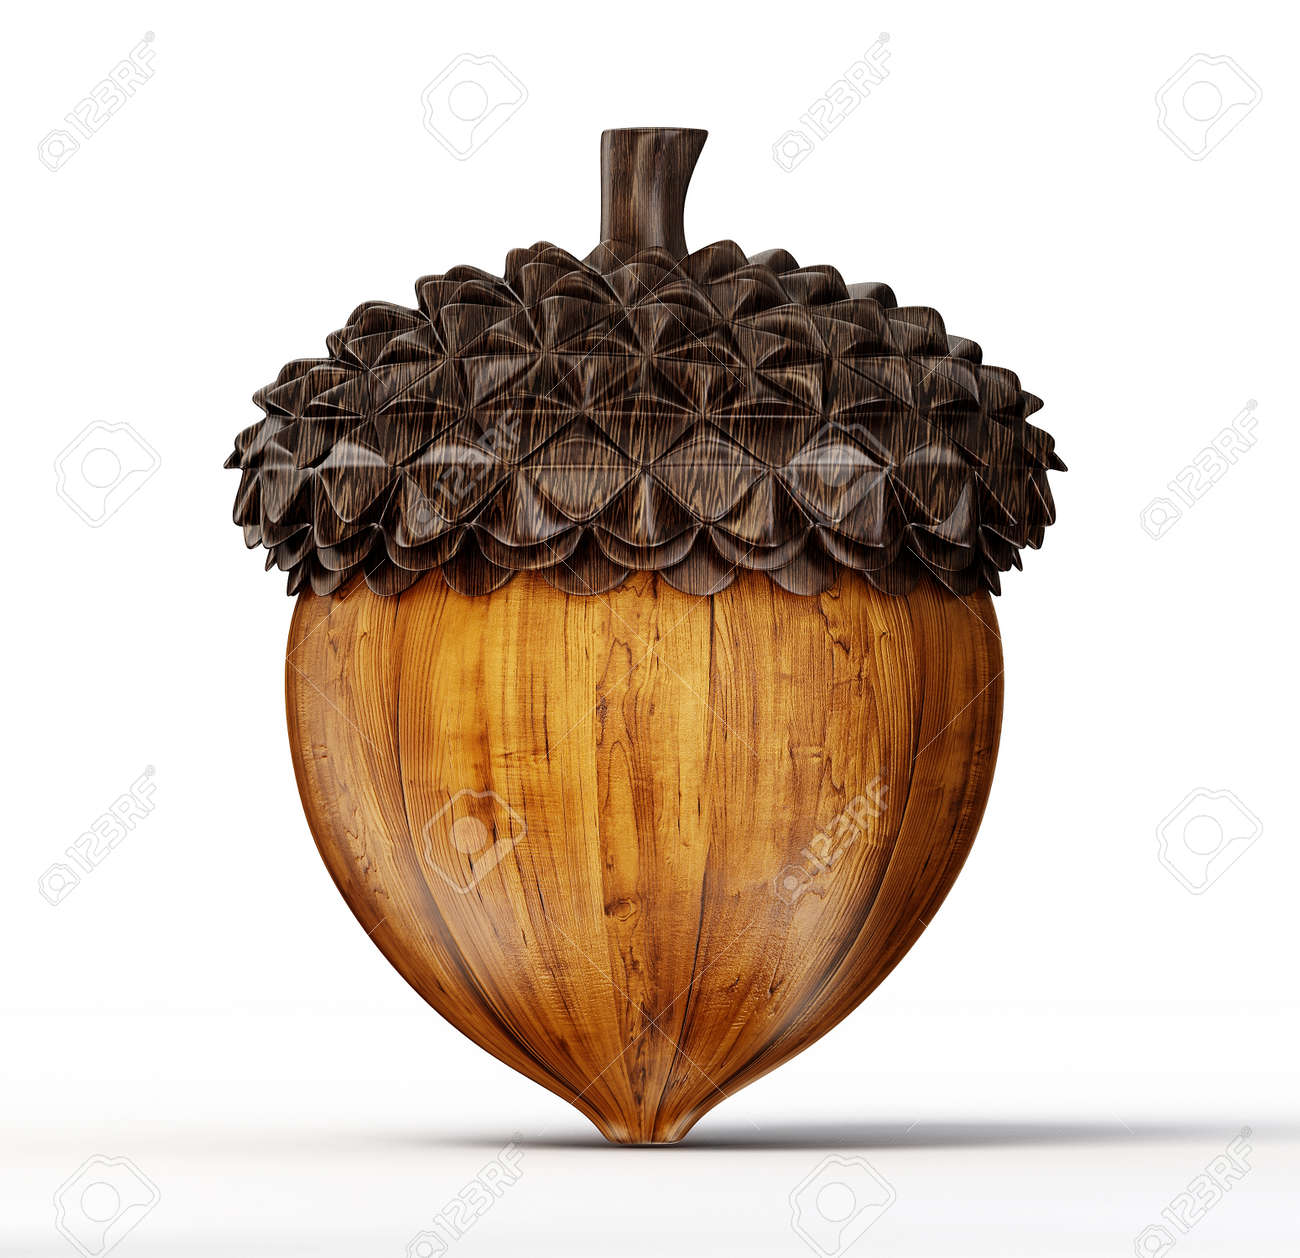 brown acorn isolated on a white background - 25741624